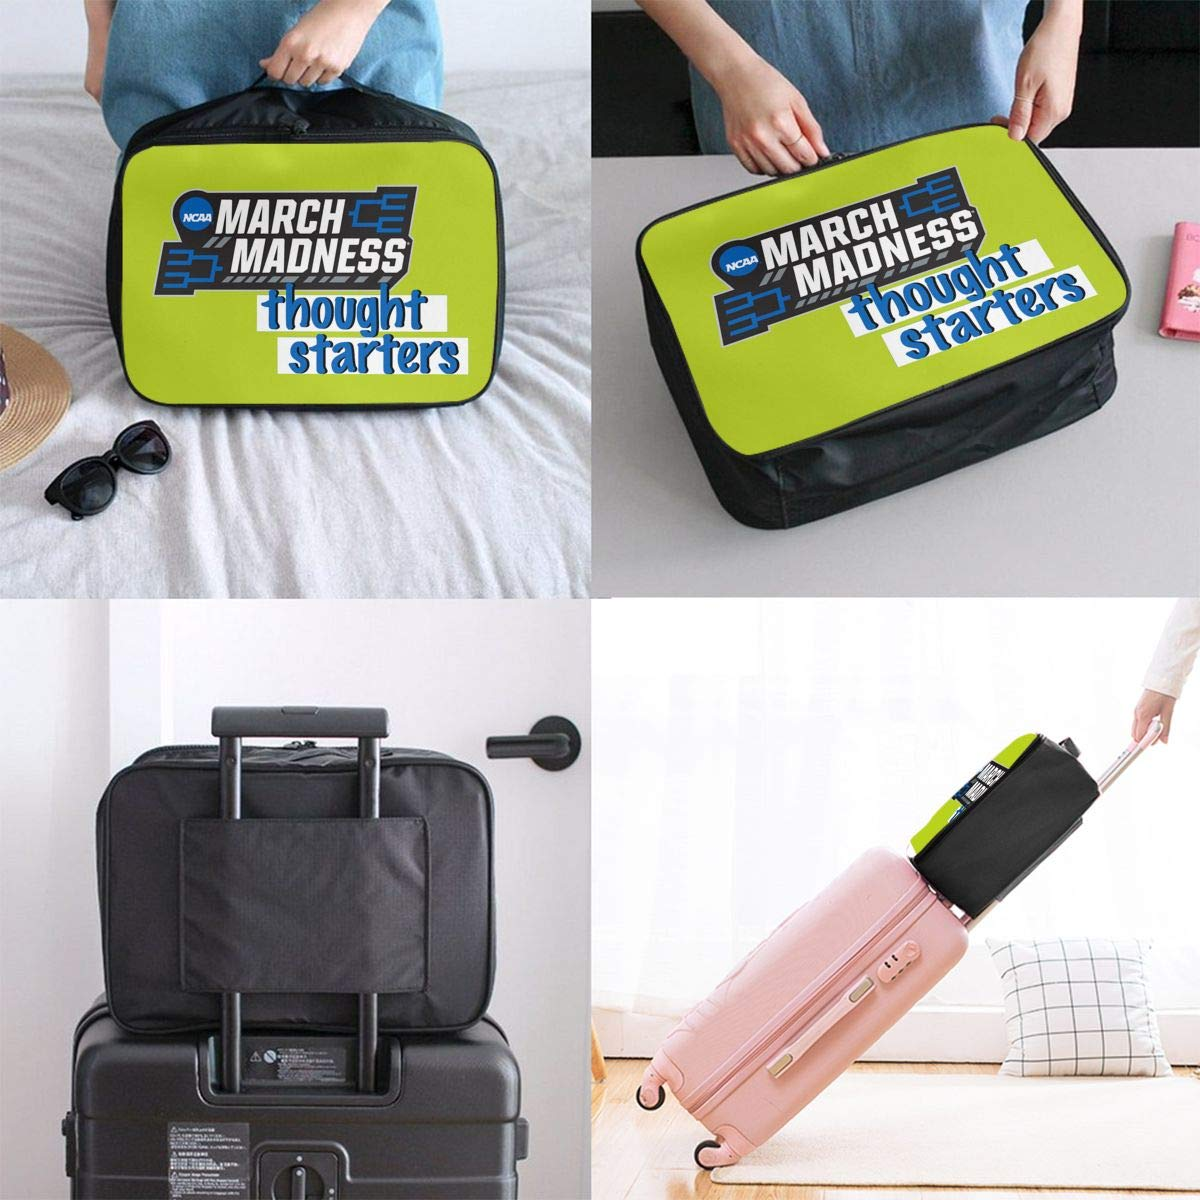 Travel Duffel Bag Waterproof Lightweight Large Capacity Duffel Tote Bag March Madness Blog Portable Handbag For Travel Camping Sport White